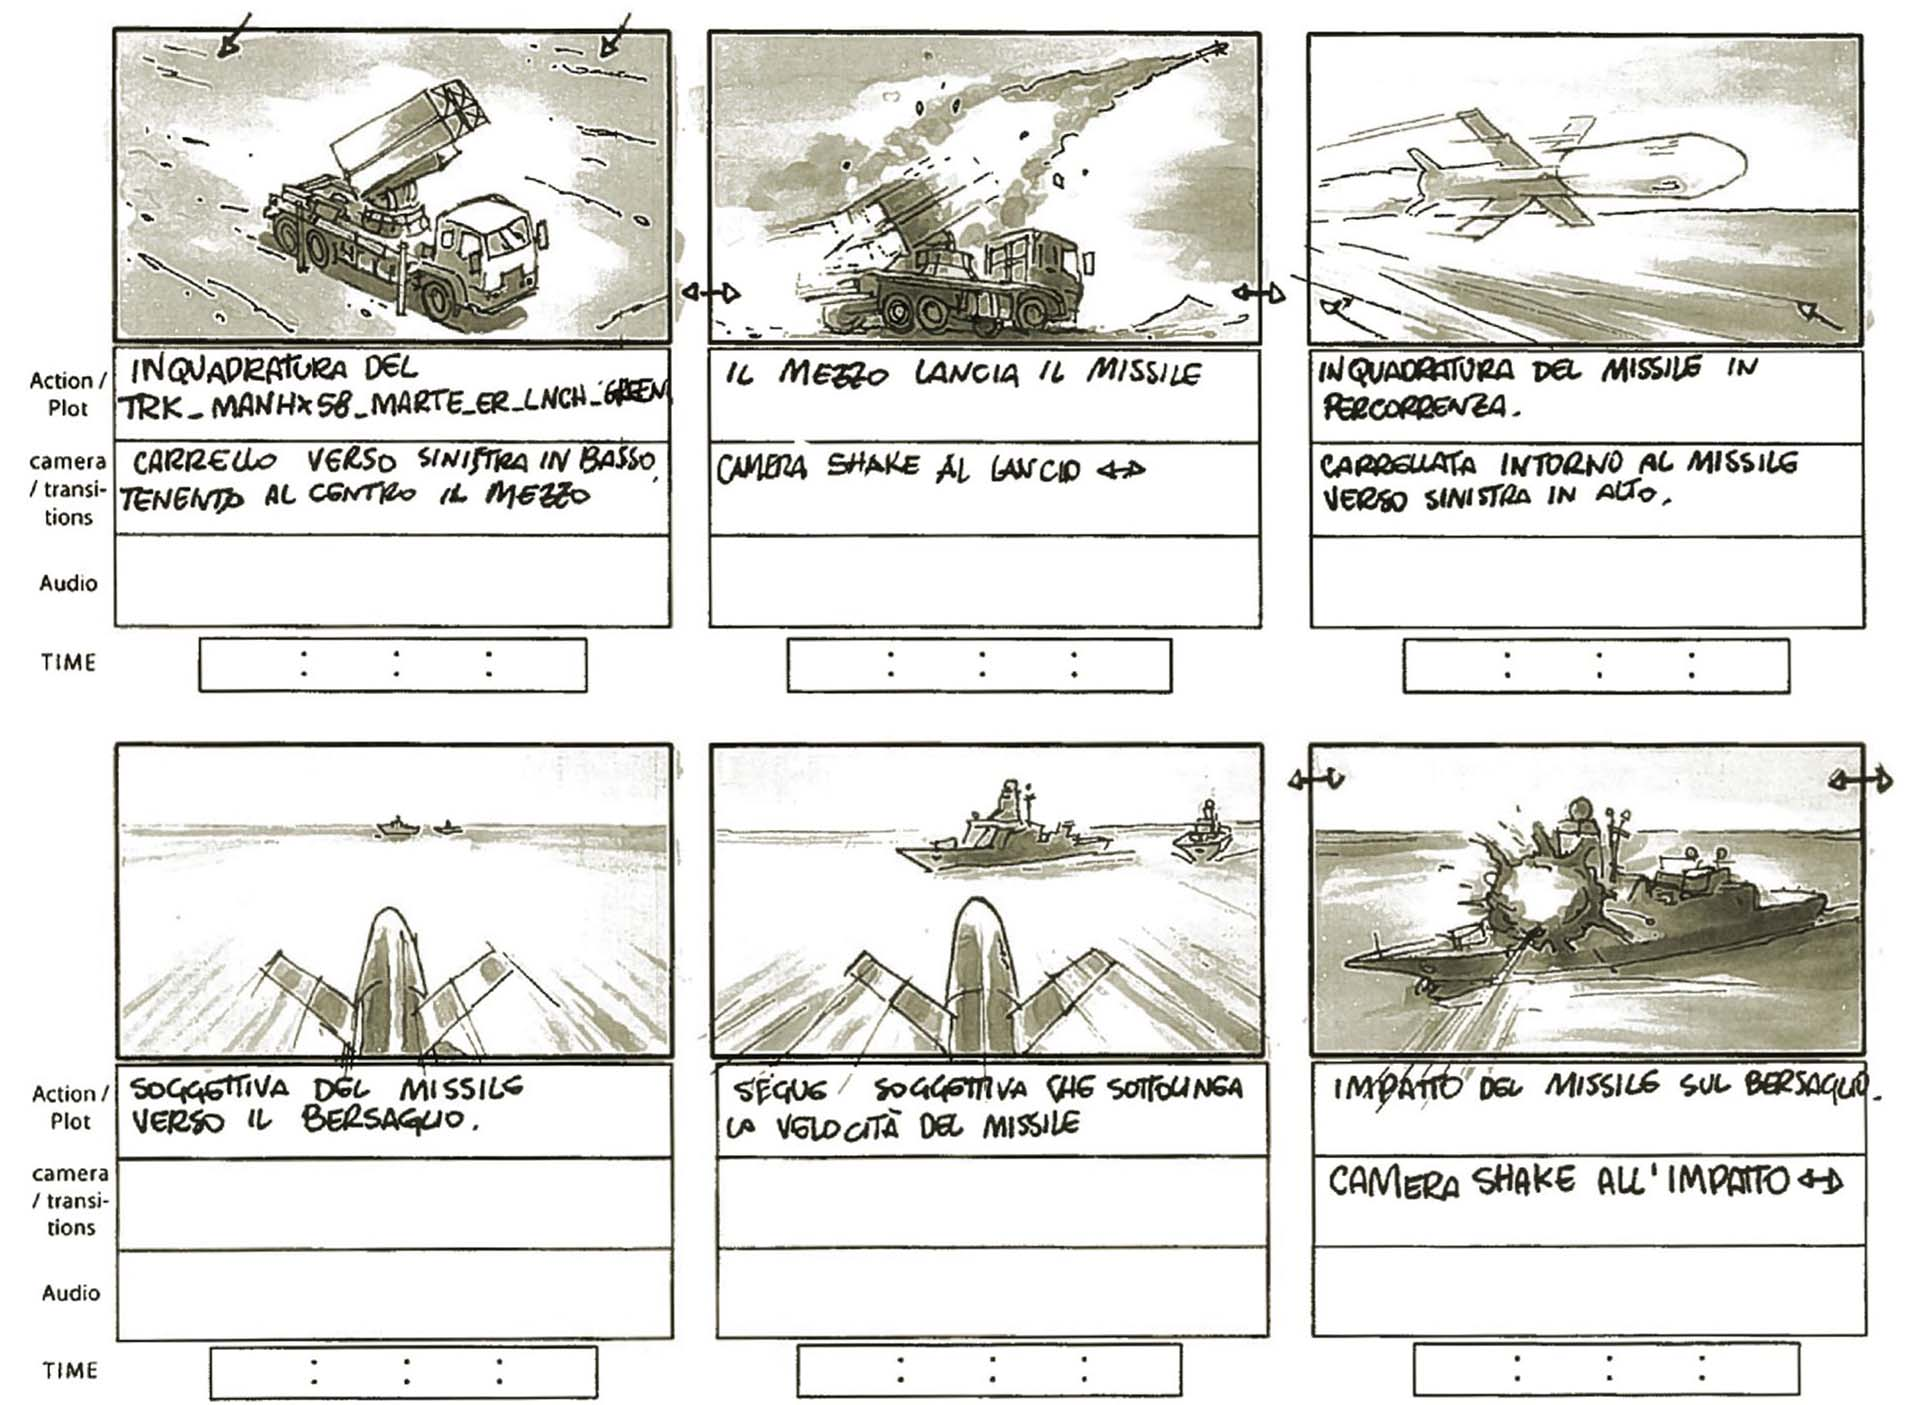 Storyboard for military defence video with missile and naval 3d models